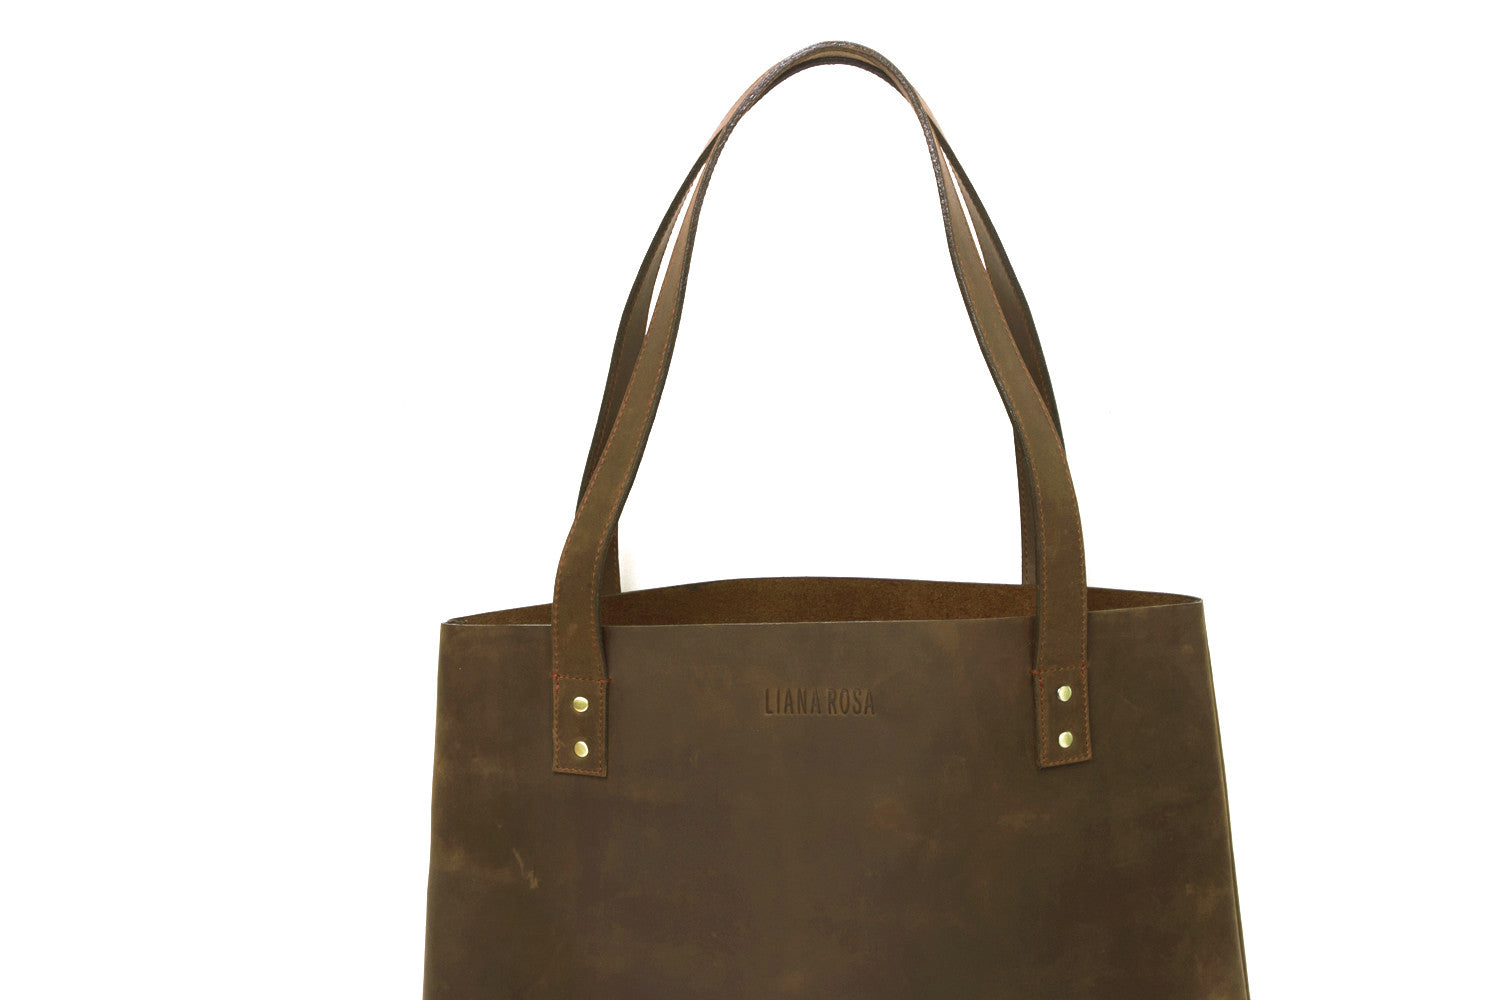 Henry Hunter Brown Leather Tote Bag Close Up View by Liana Rosa